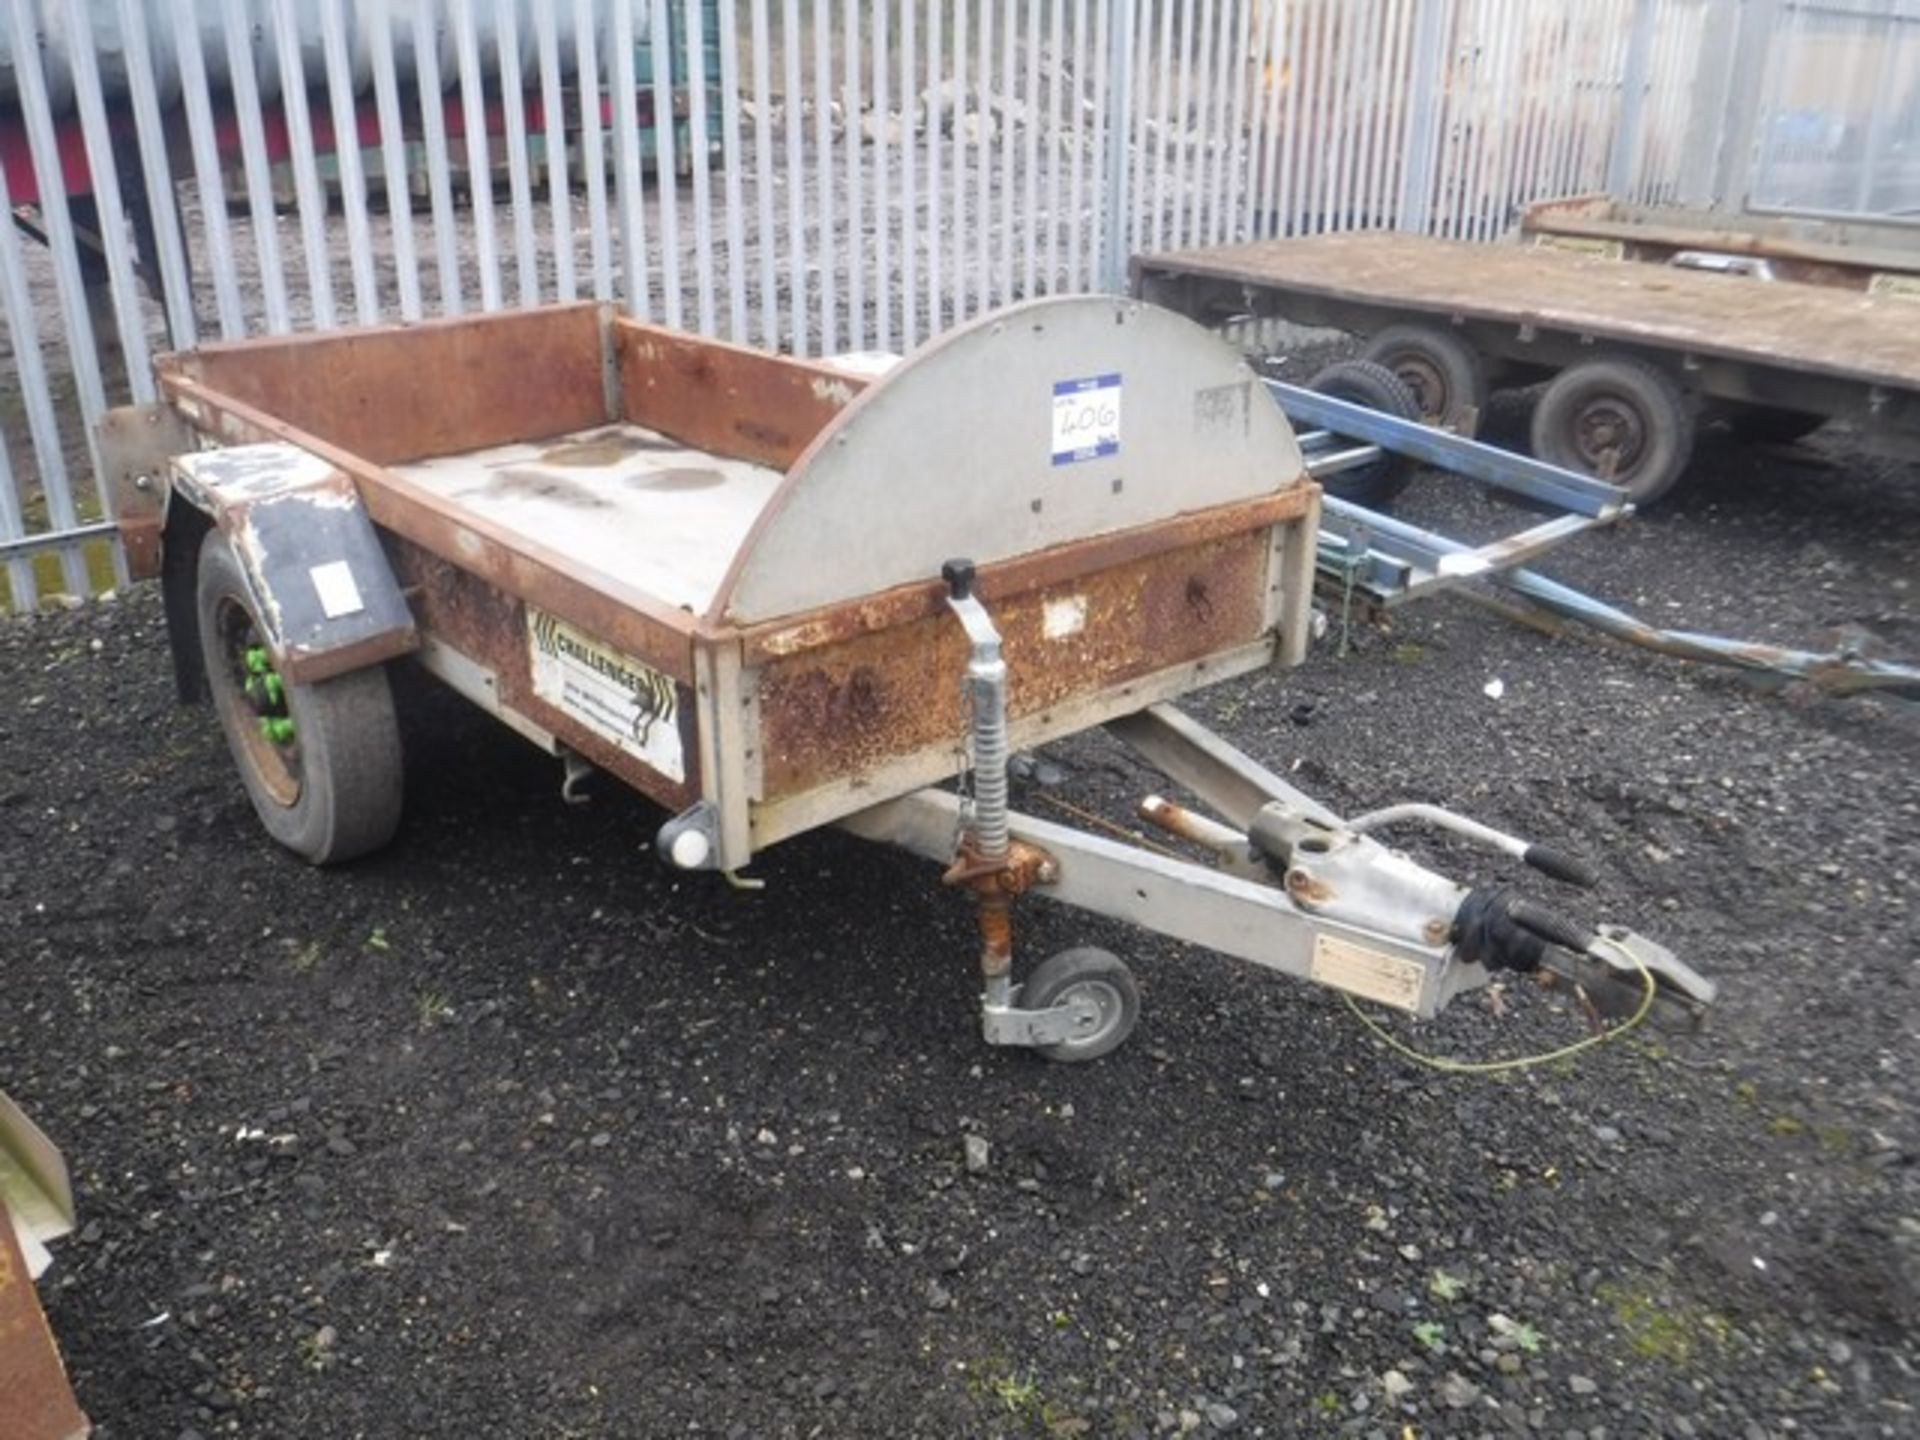 Lot 1406 - INDESPENSION CHALLENGER SINGLE AXLE TRAILER 8x4 VIN No. - G138403